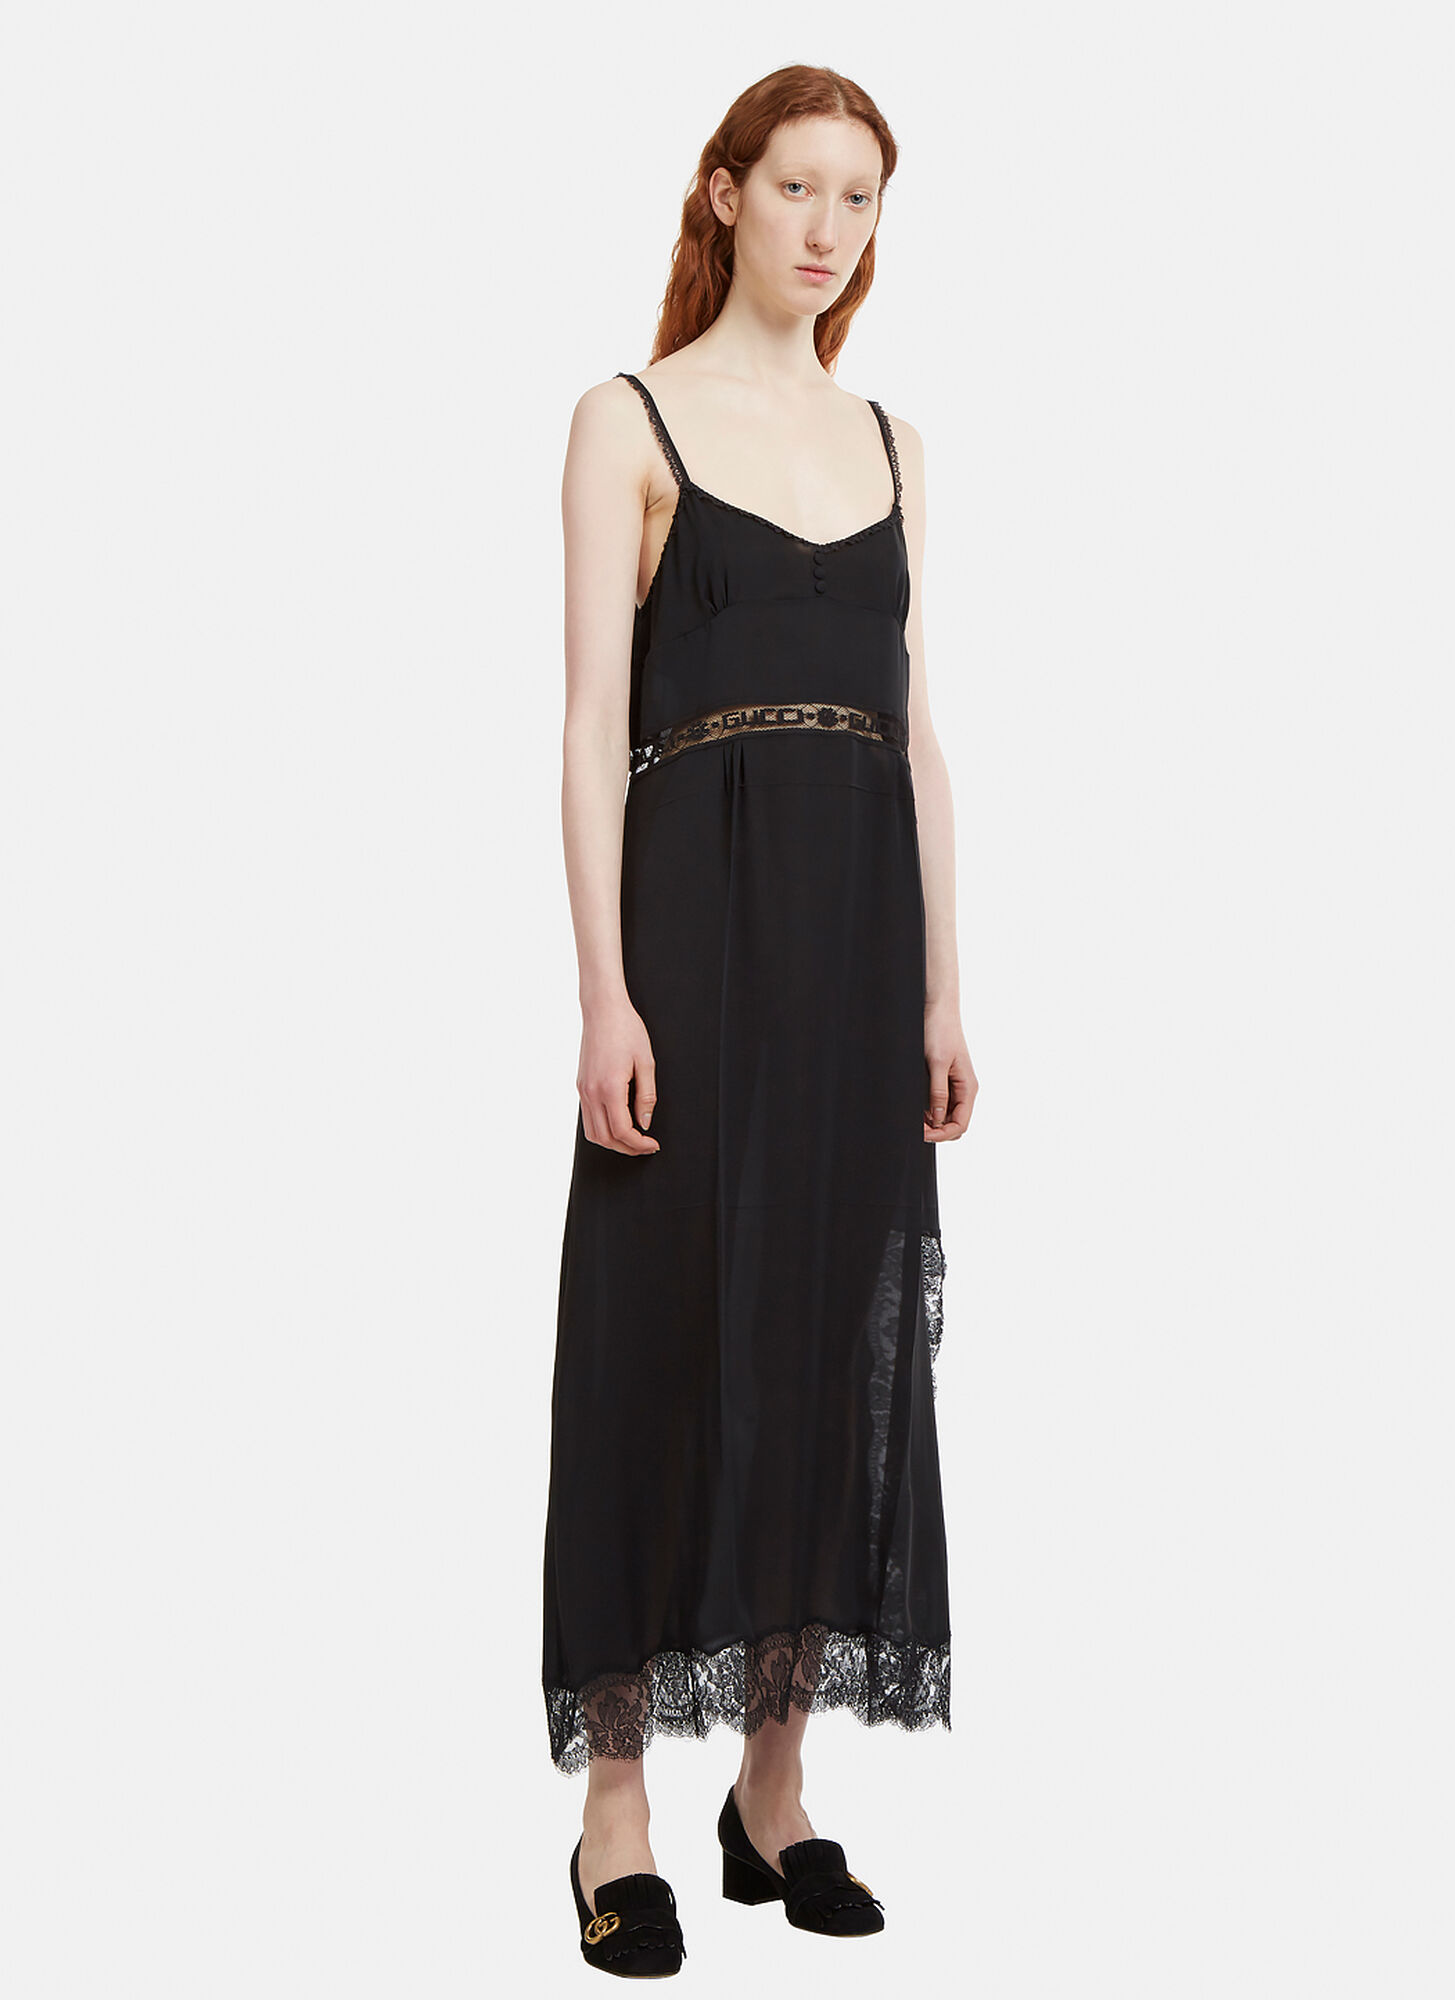 Photo of Gucci Silk dress in Black - Gucci Dresses